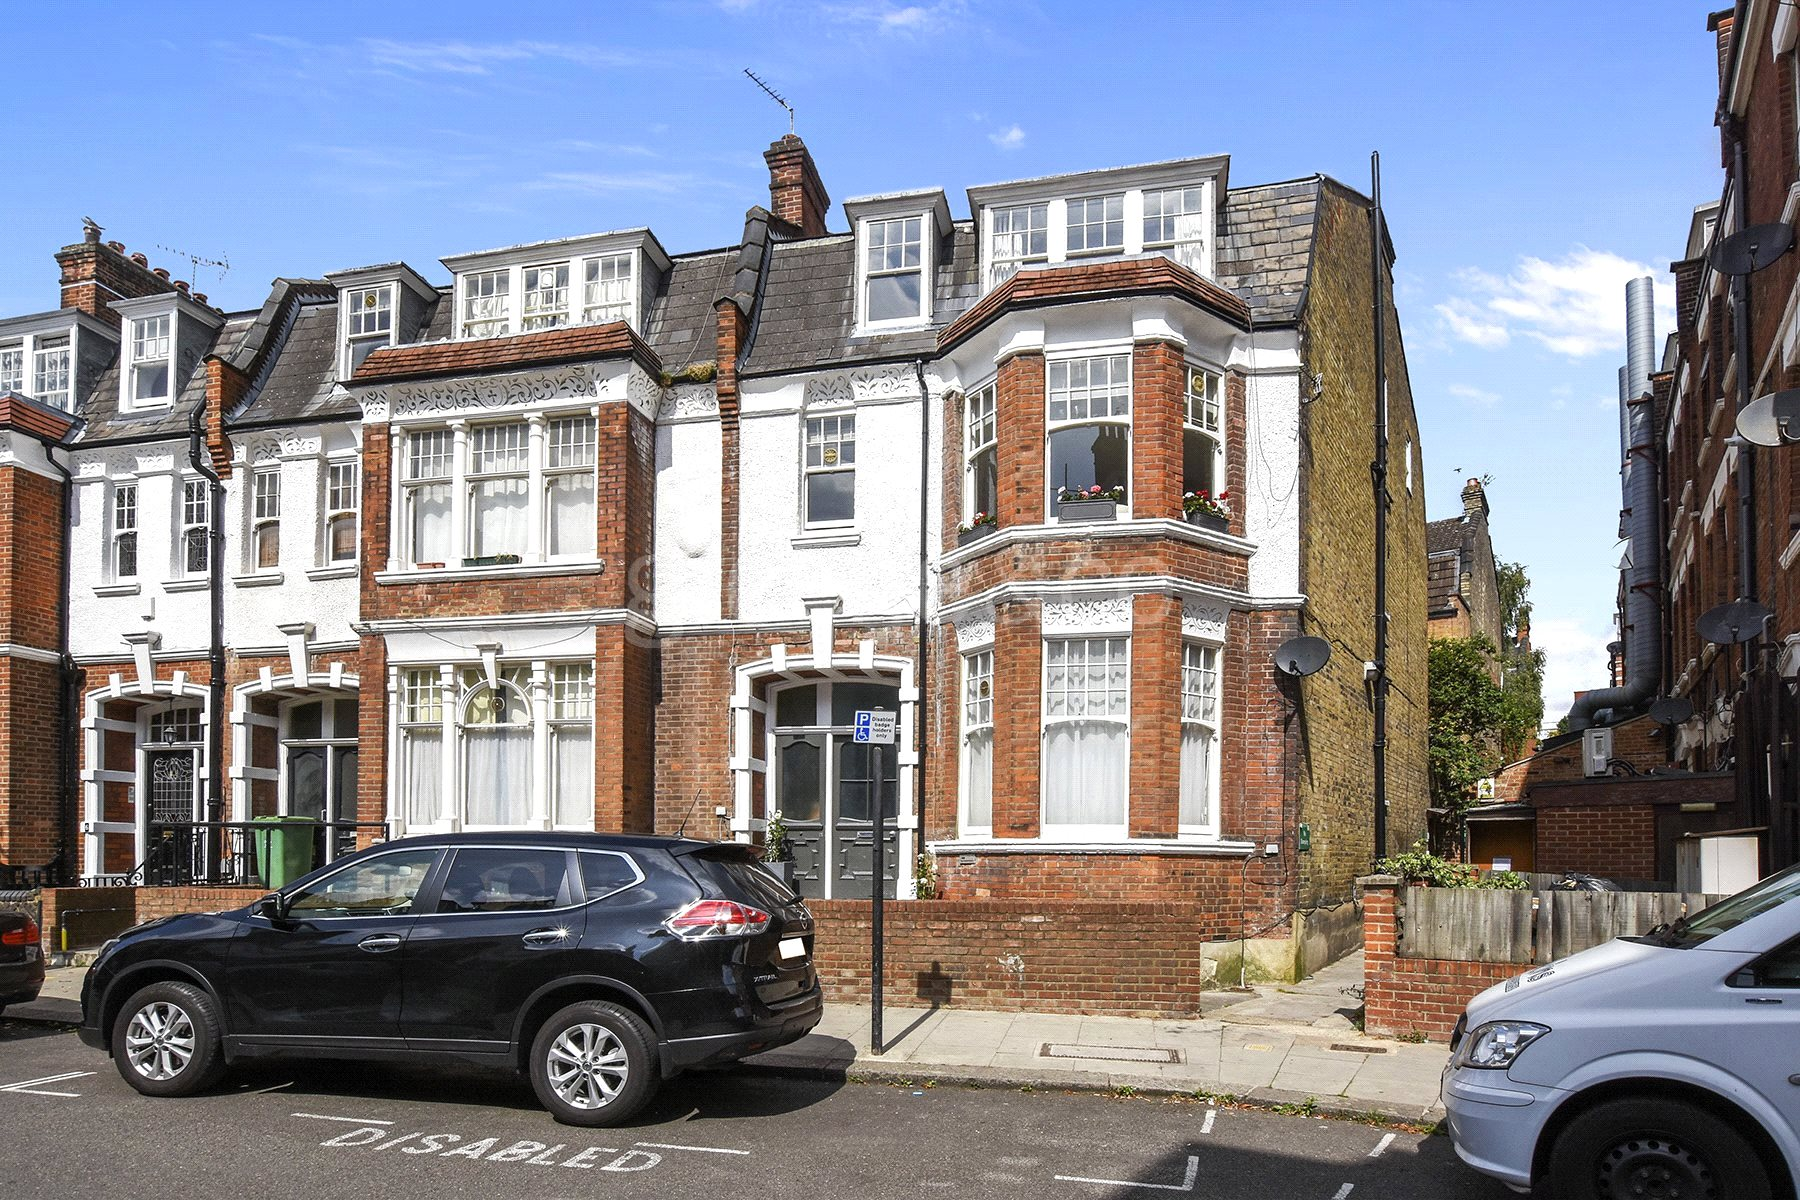 2 Bedrooms Flat for sale in Howitt Road, Belsize Park, London, NW3